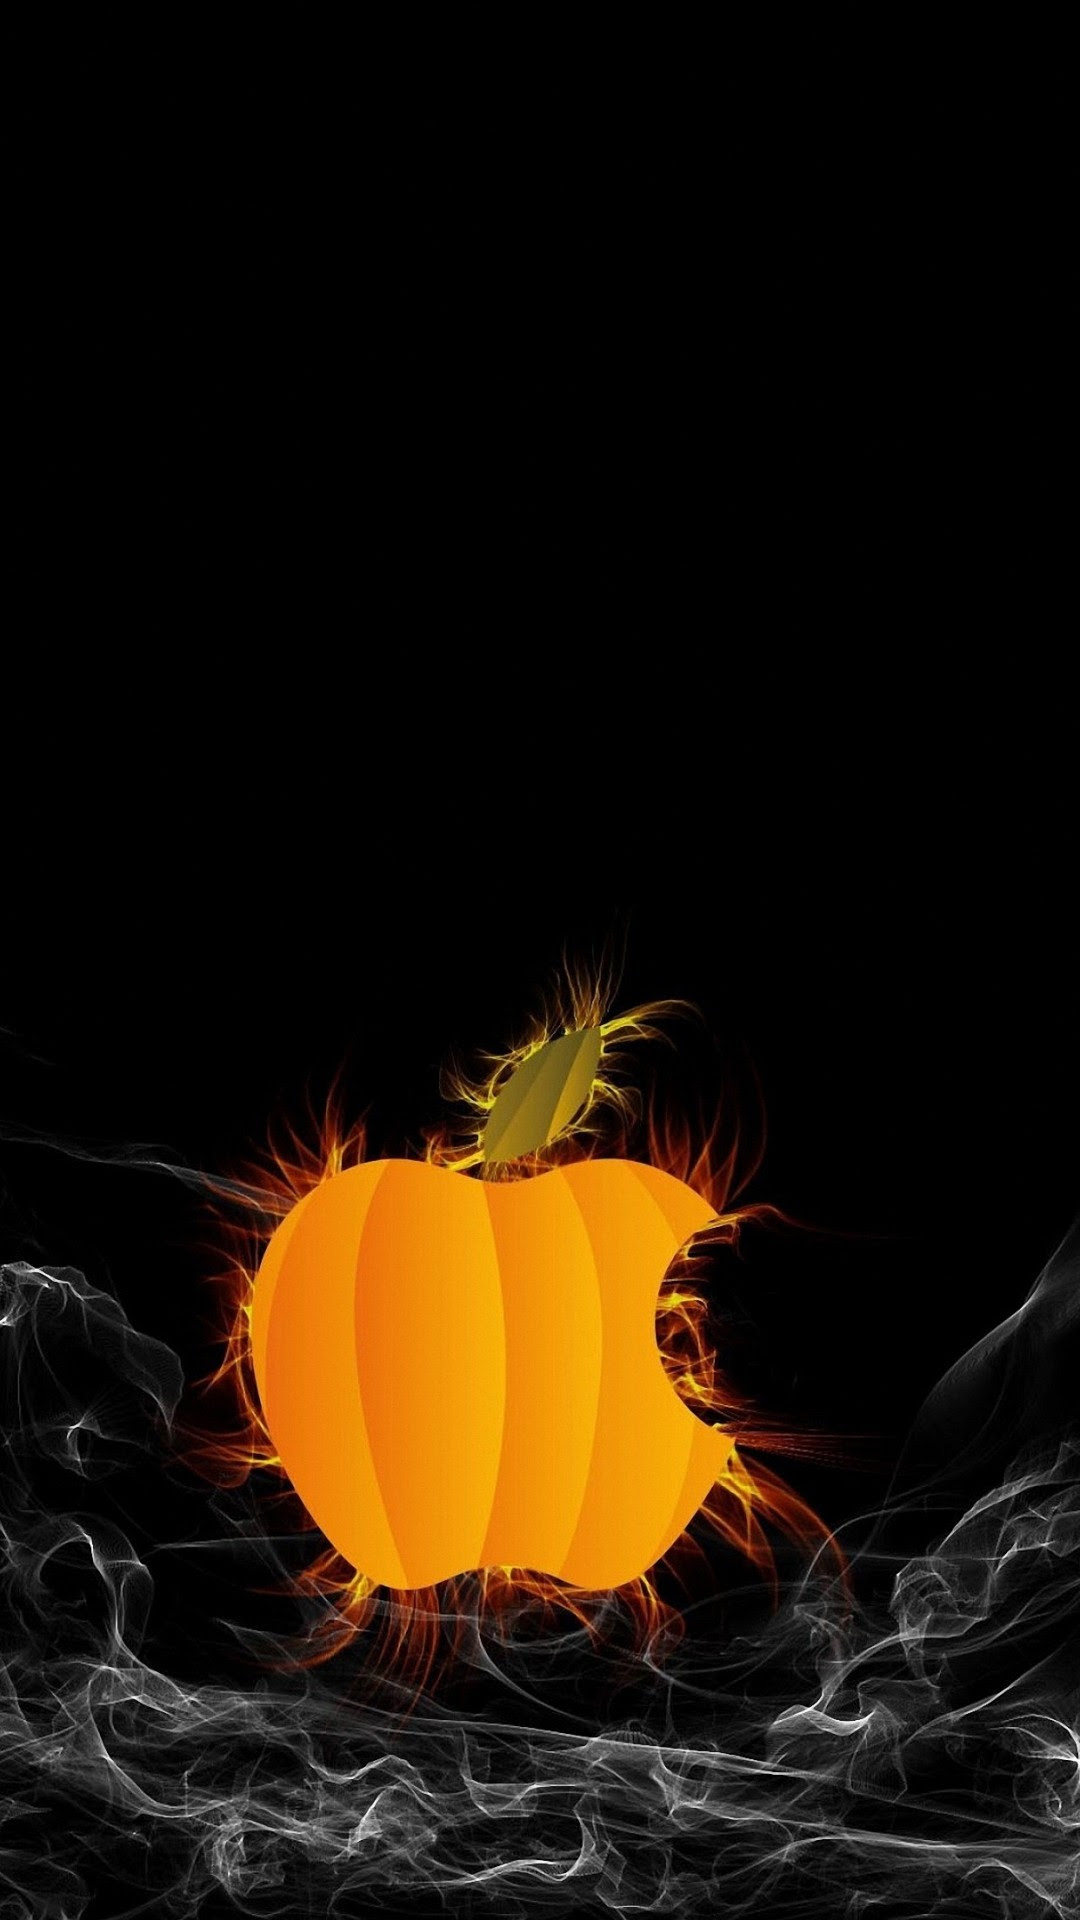 Live Halloween Wallpaper For Iphone 73 Images